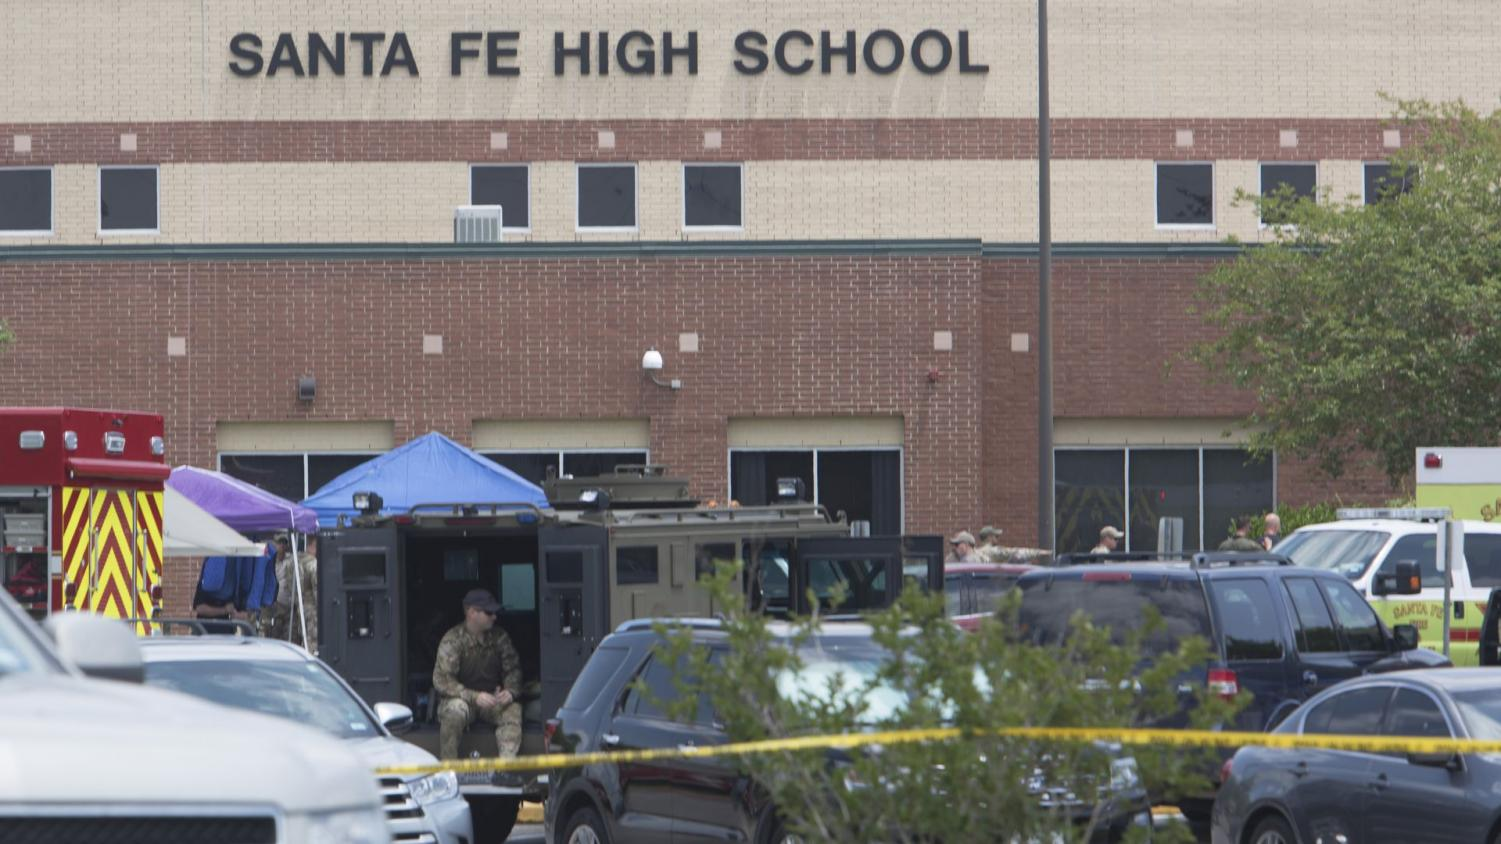 Santa Fe High School, where the shooting occured.